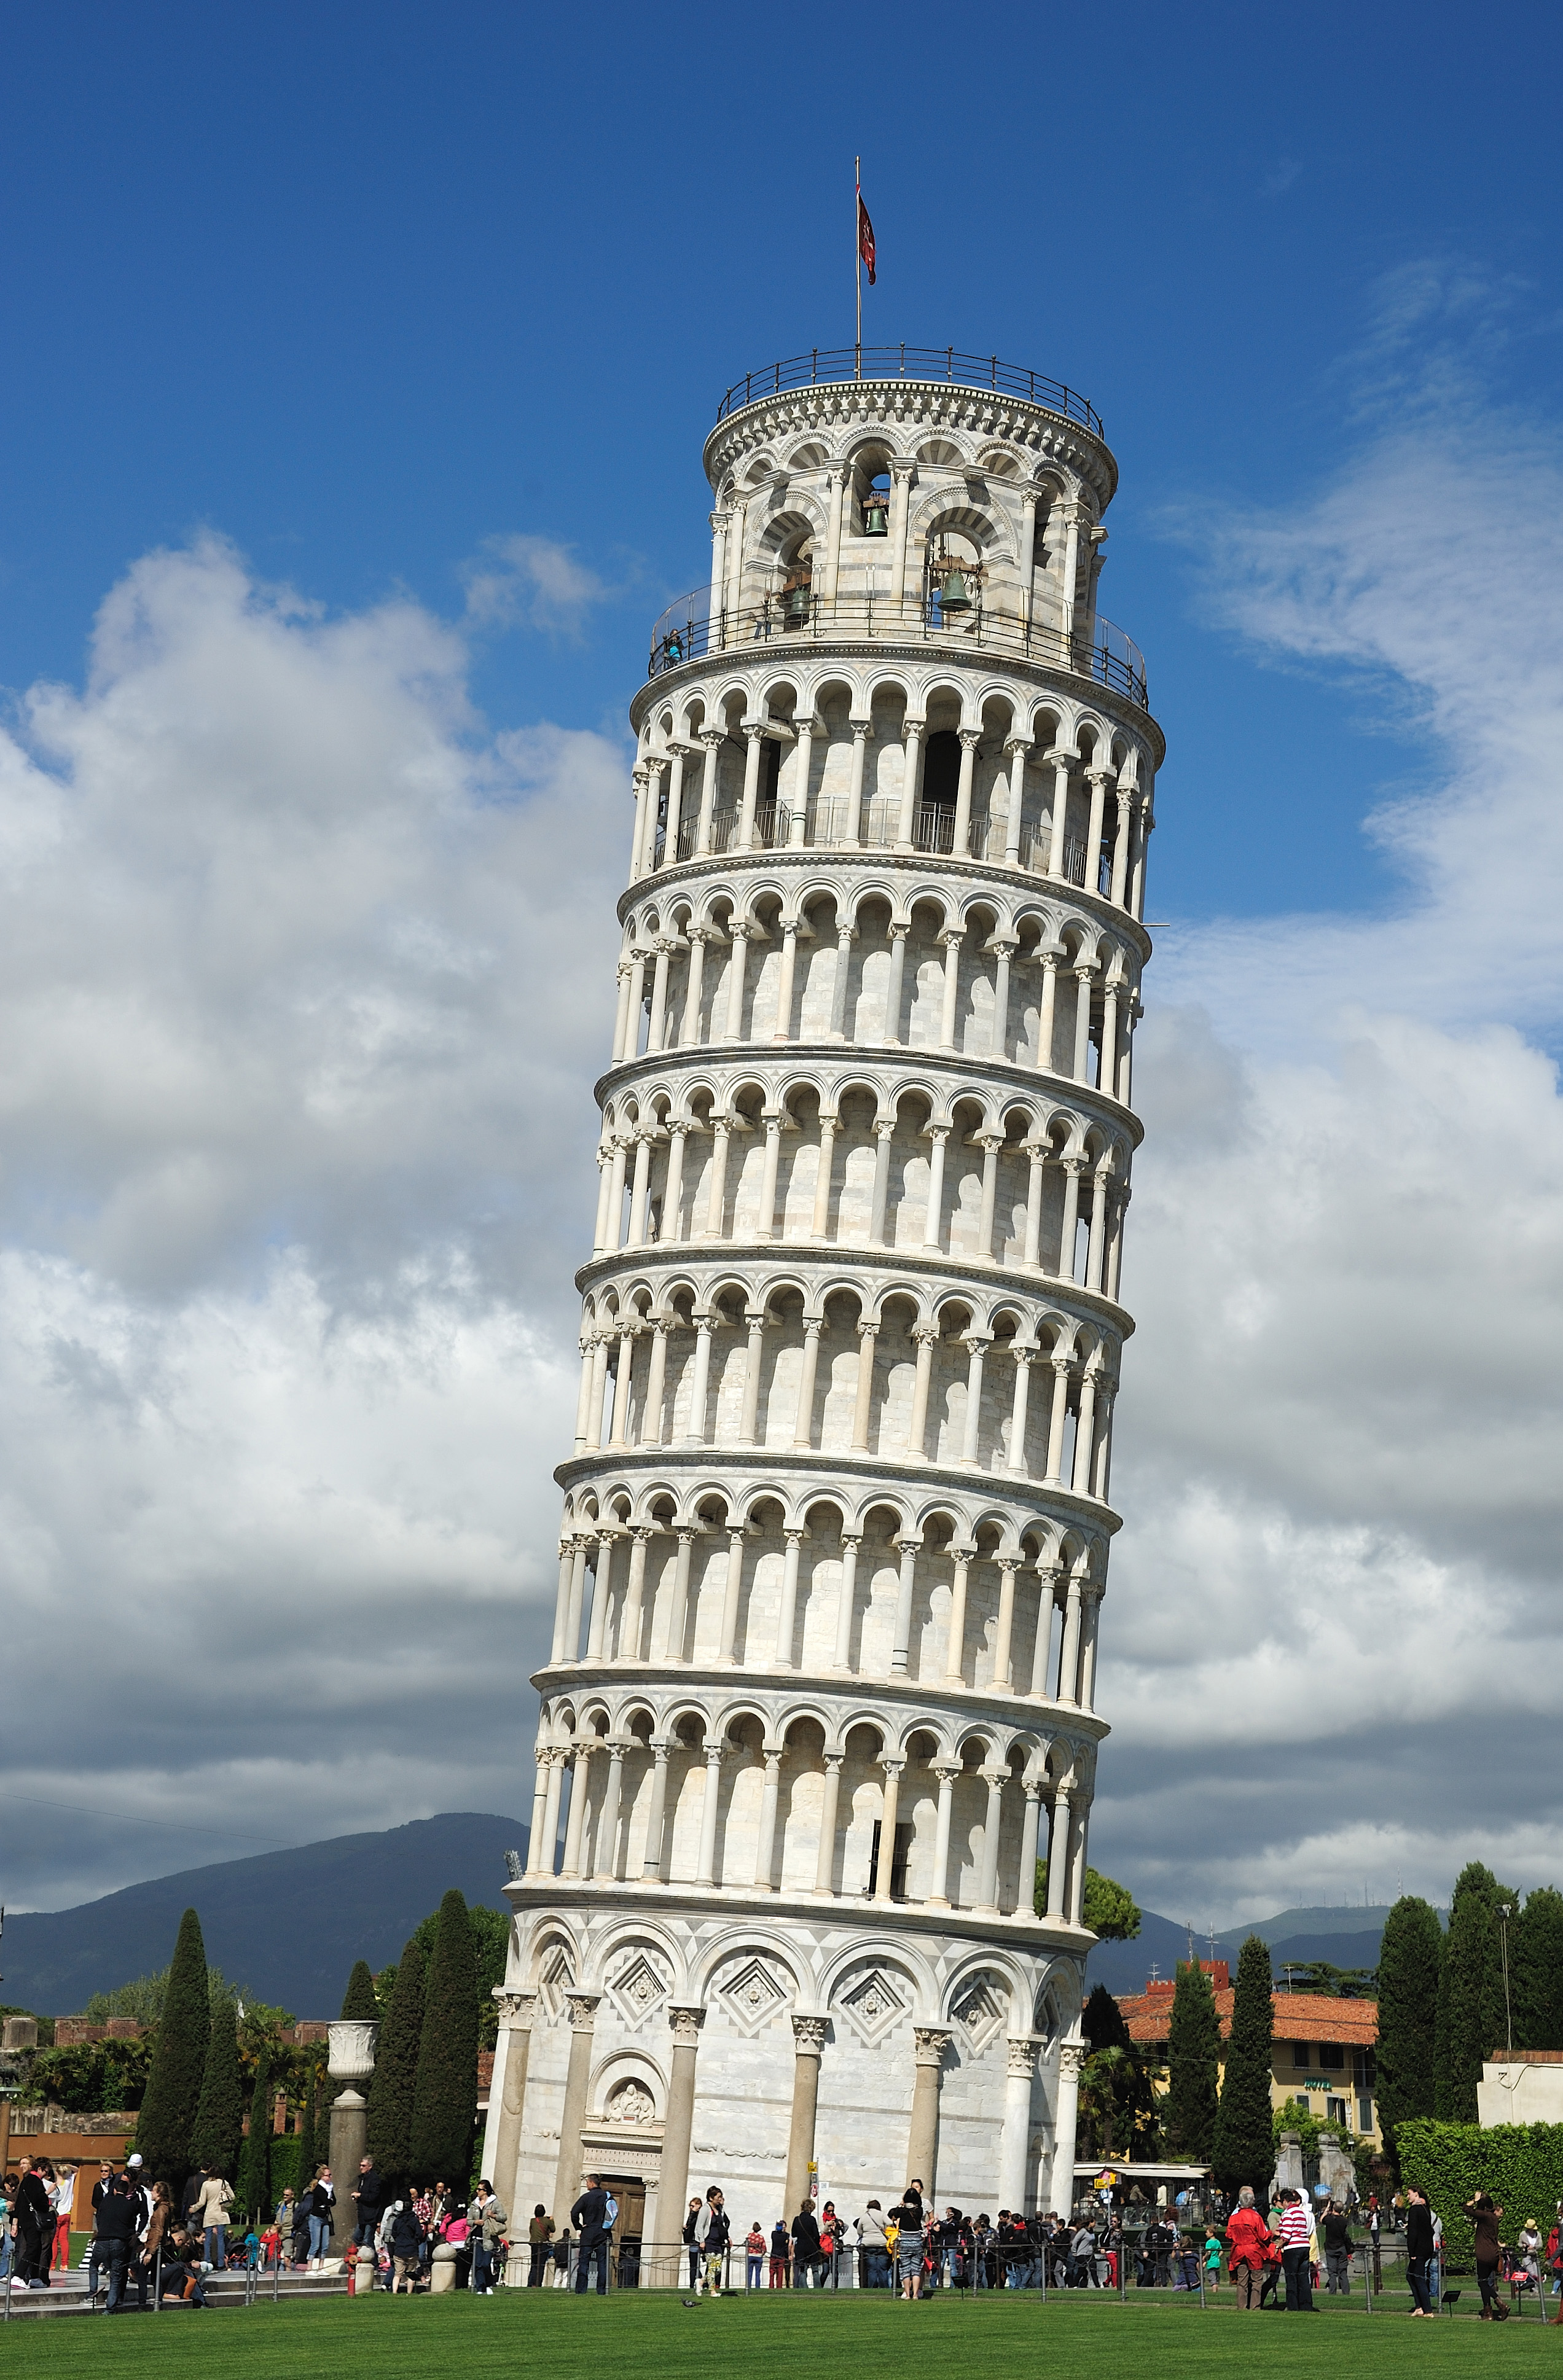 20 Buildings in Europe Every Architect must visit - Leaning Tower Of Pisa, Pisa, Italy